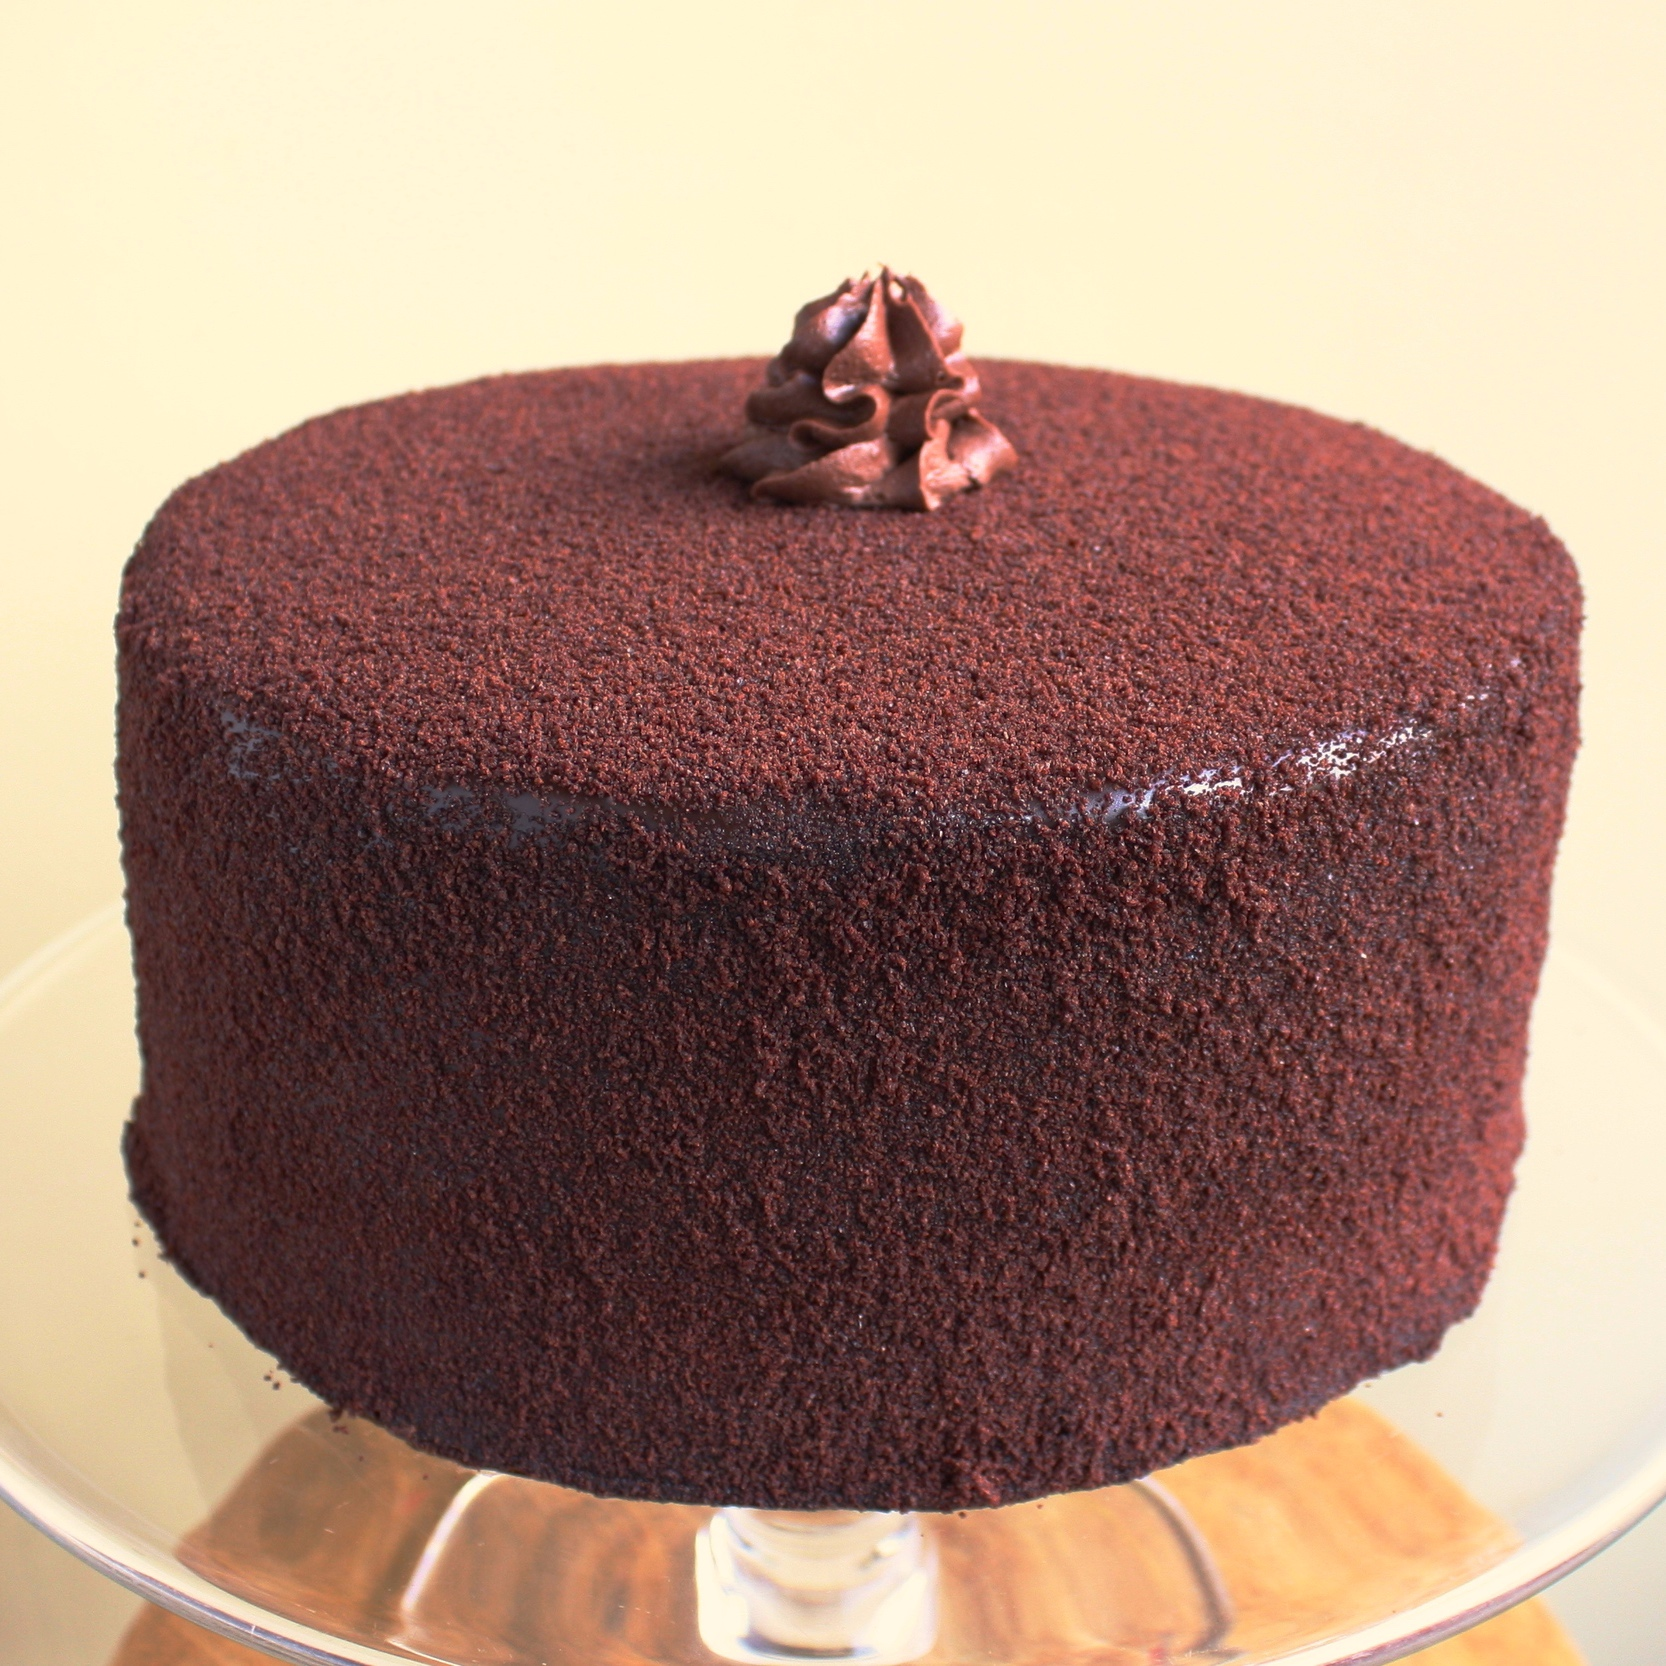 Devil's food*  a rich chocolate cake layered with chocolate ganache and caramel, iced with chocolate ganache, and dusted with chocolate cake crumbs